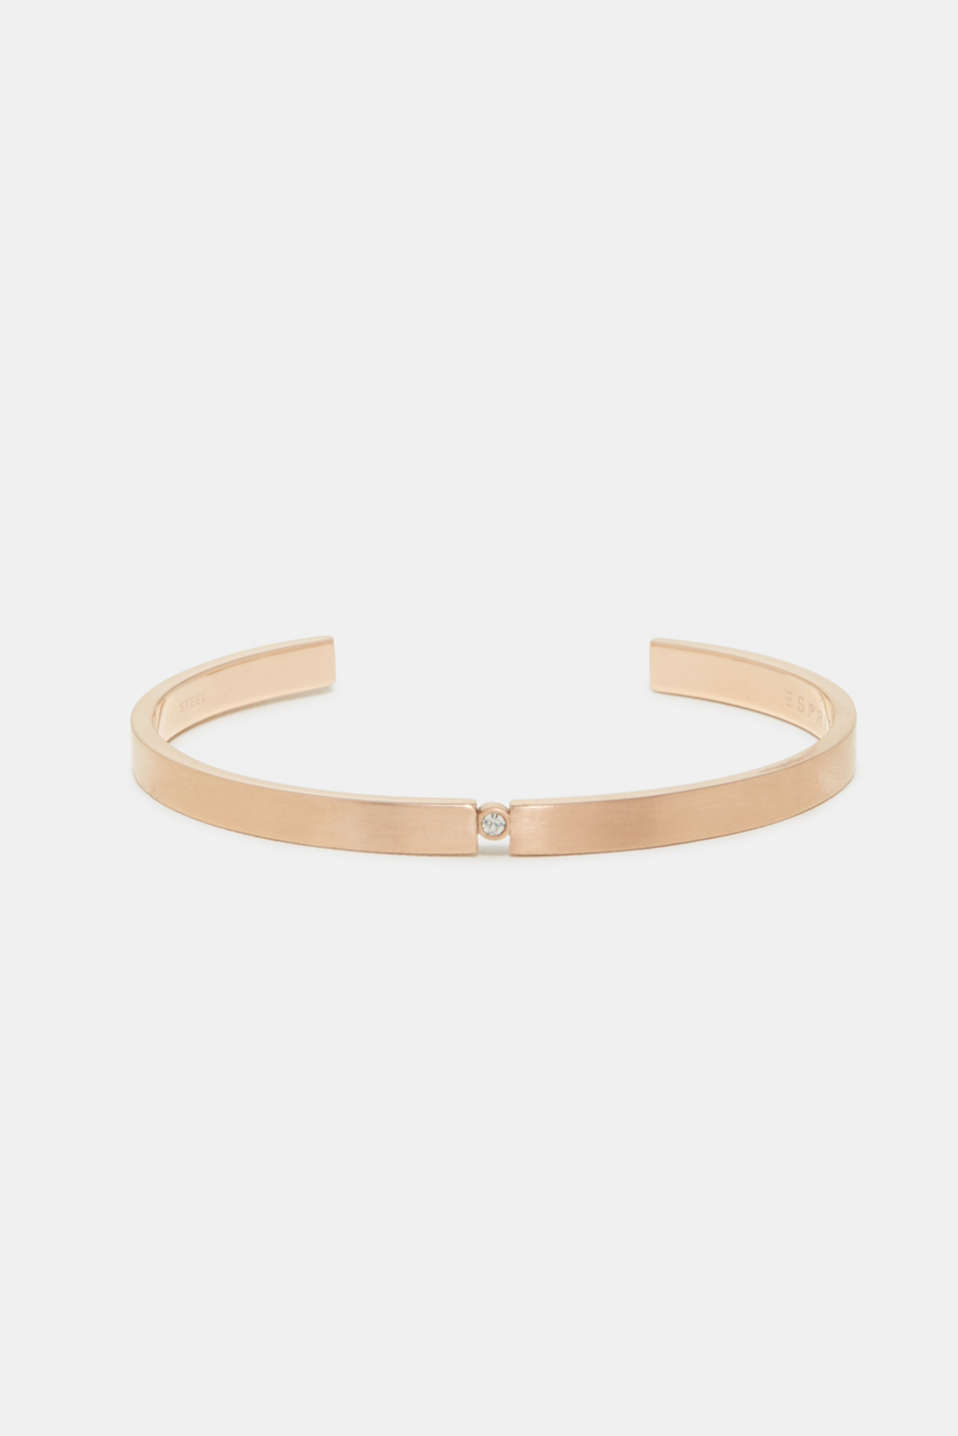 Esprit - Open bangle with zirconia, in rose gold